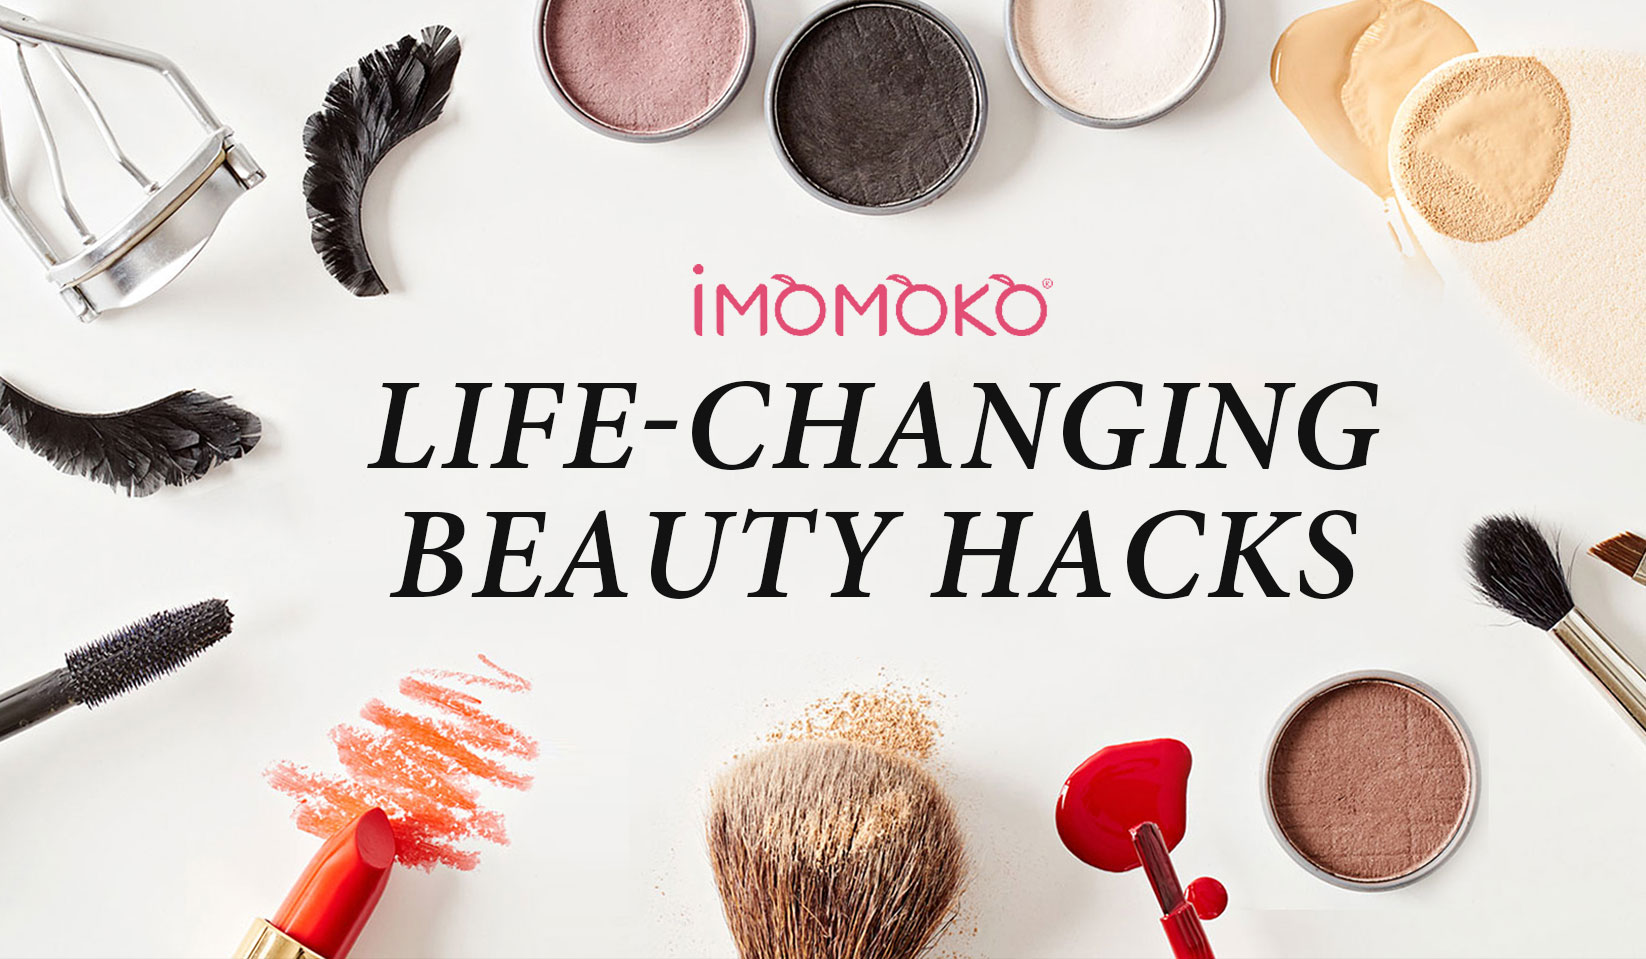 Silk_WorkPage_Imomoko-1